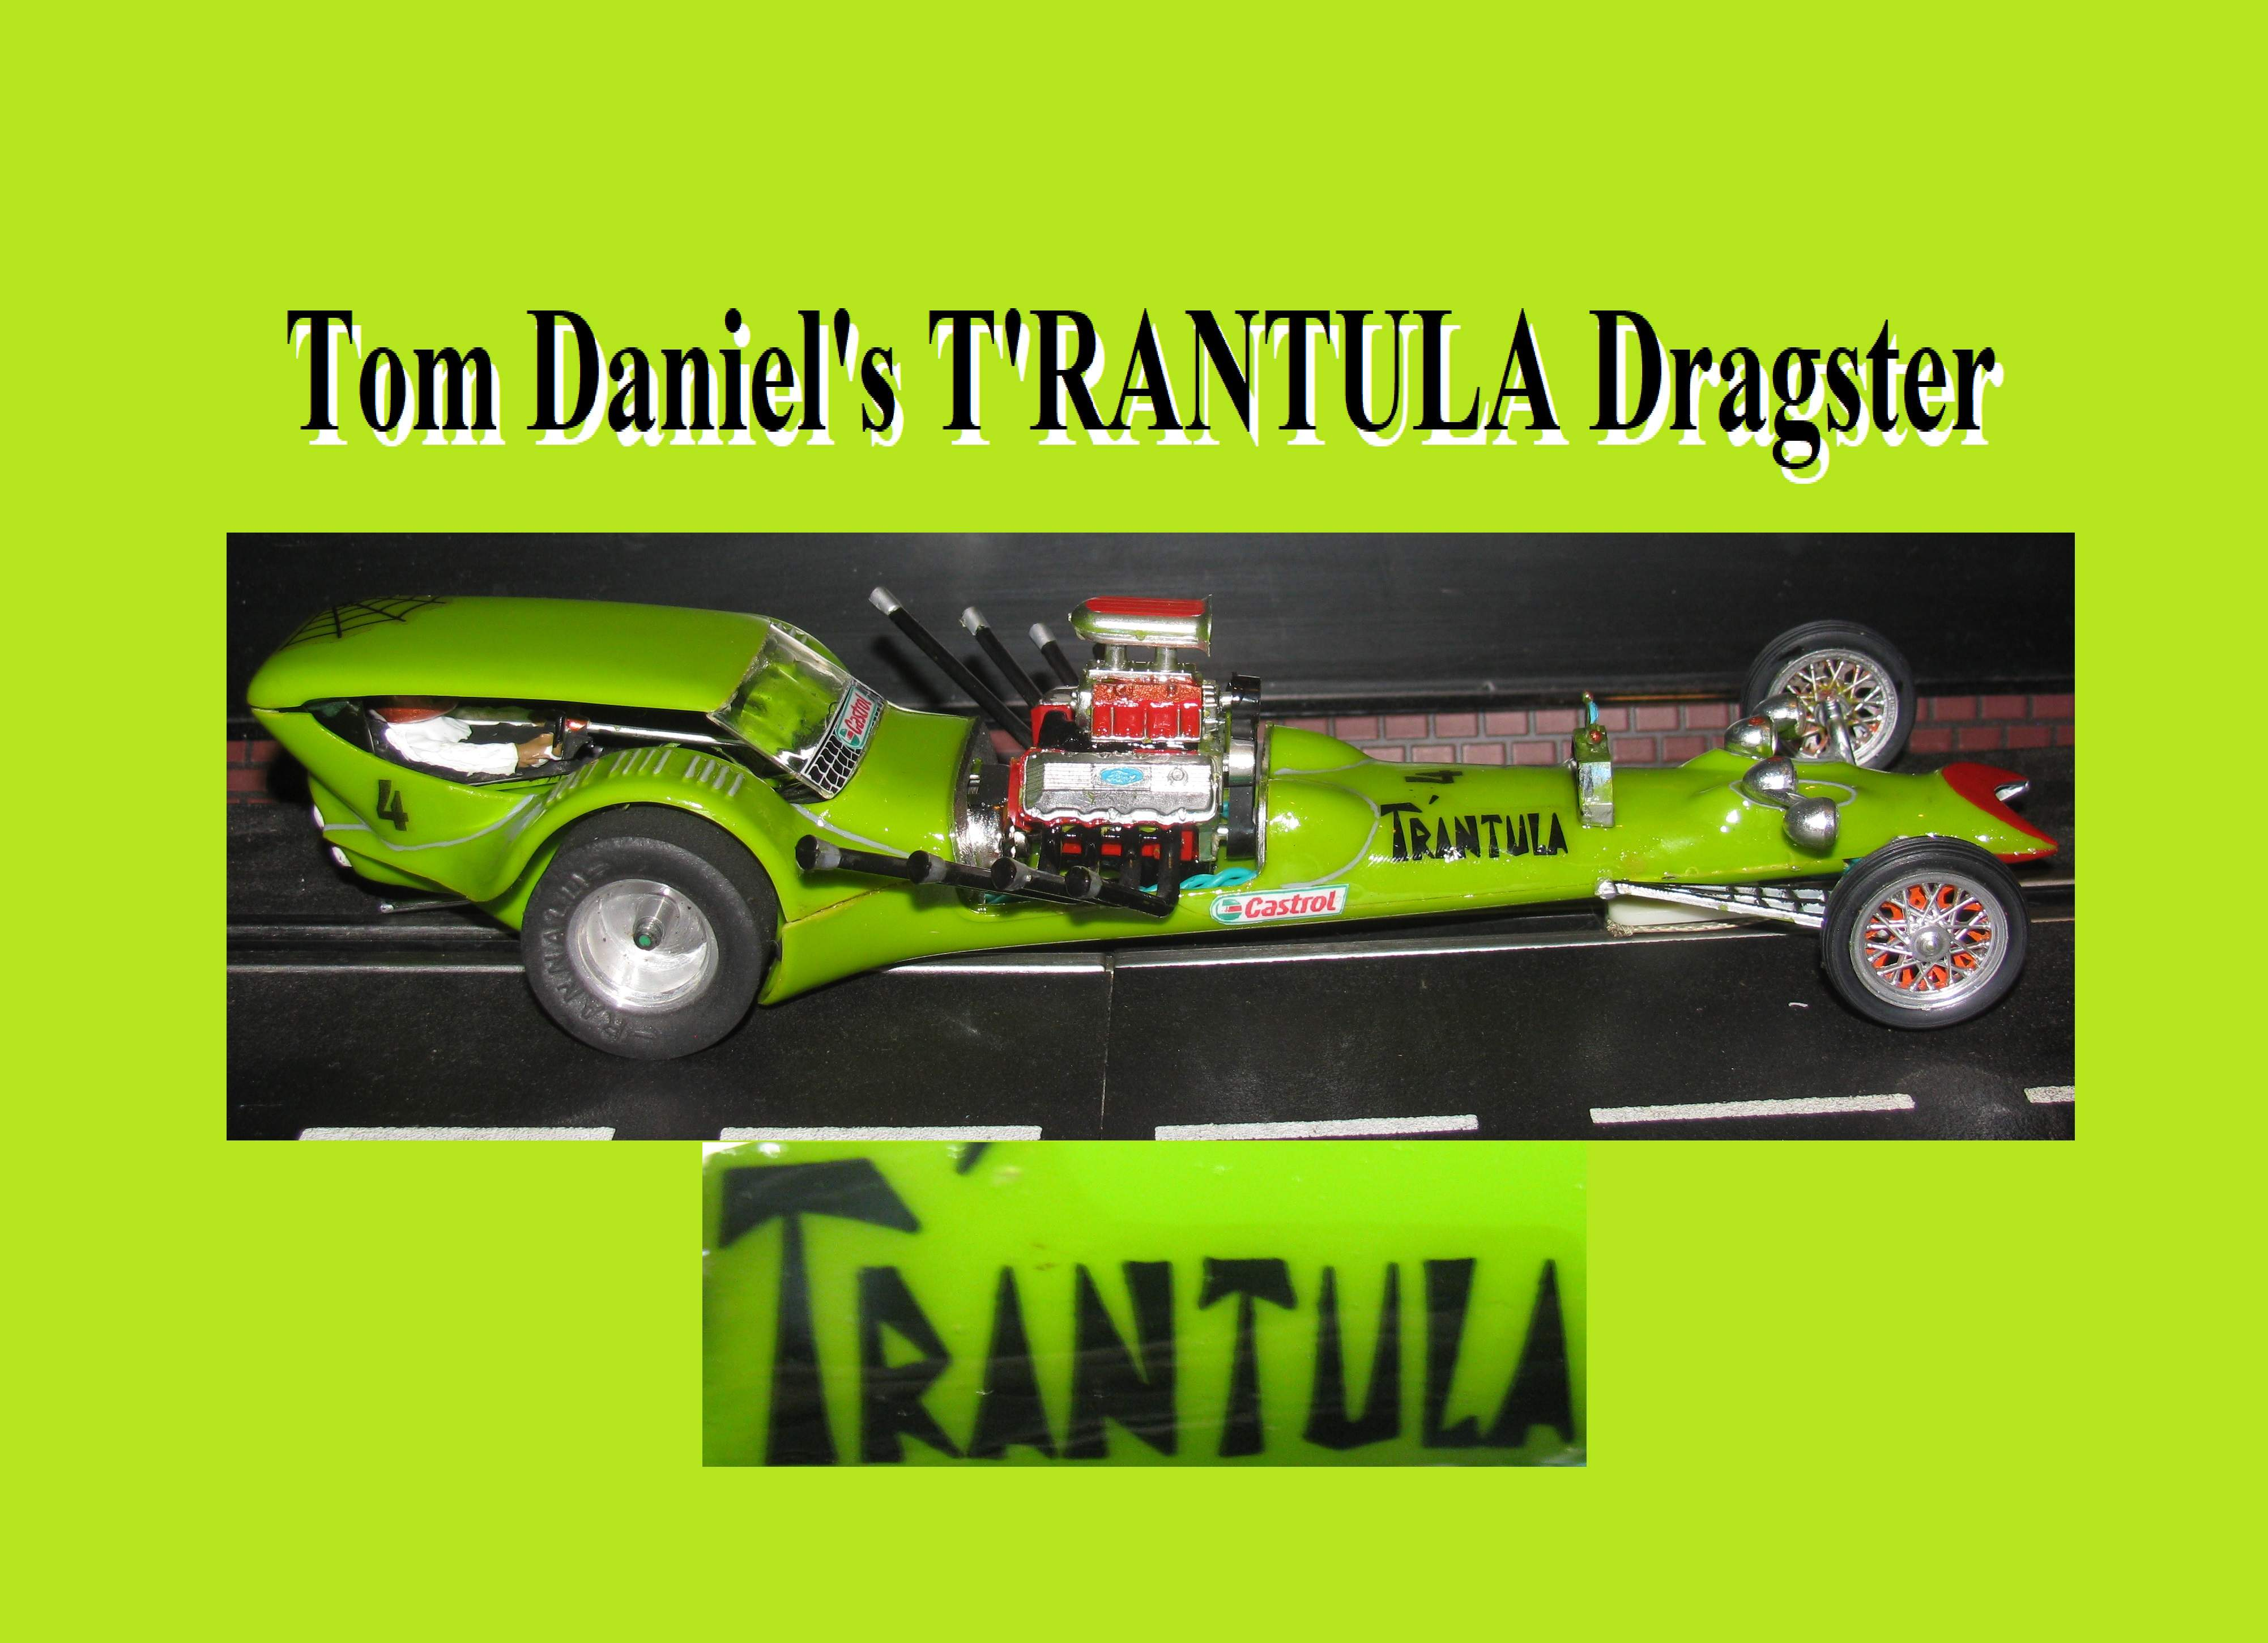 *SOLD Pending completion - ?boytoy22?* Price will be adjusted into package deal including adjusted combined Insured Shipping * Winter Super Sale * Monogram Tom Daniel's T'RANTULA Dragster Slot Car #4